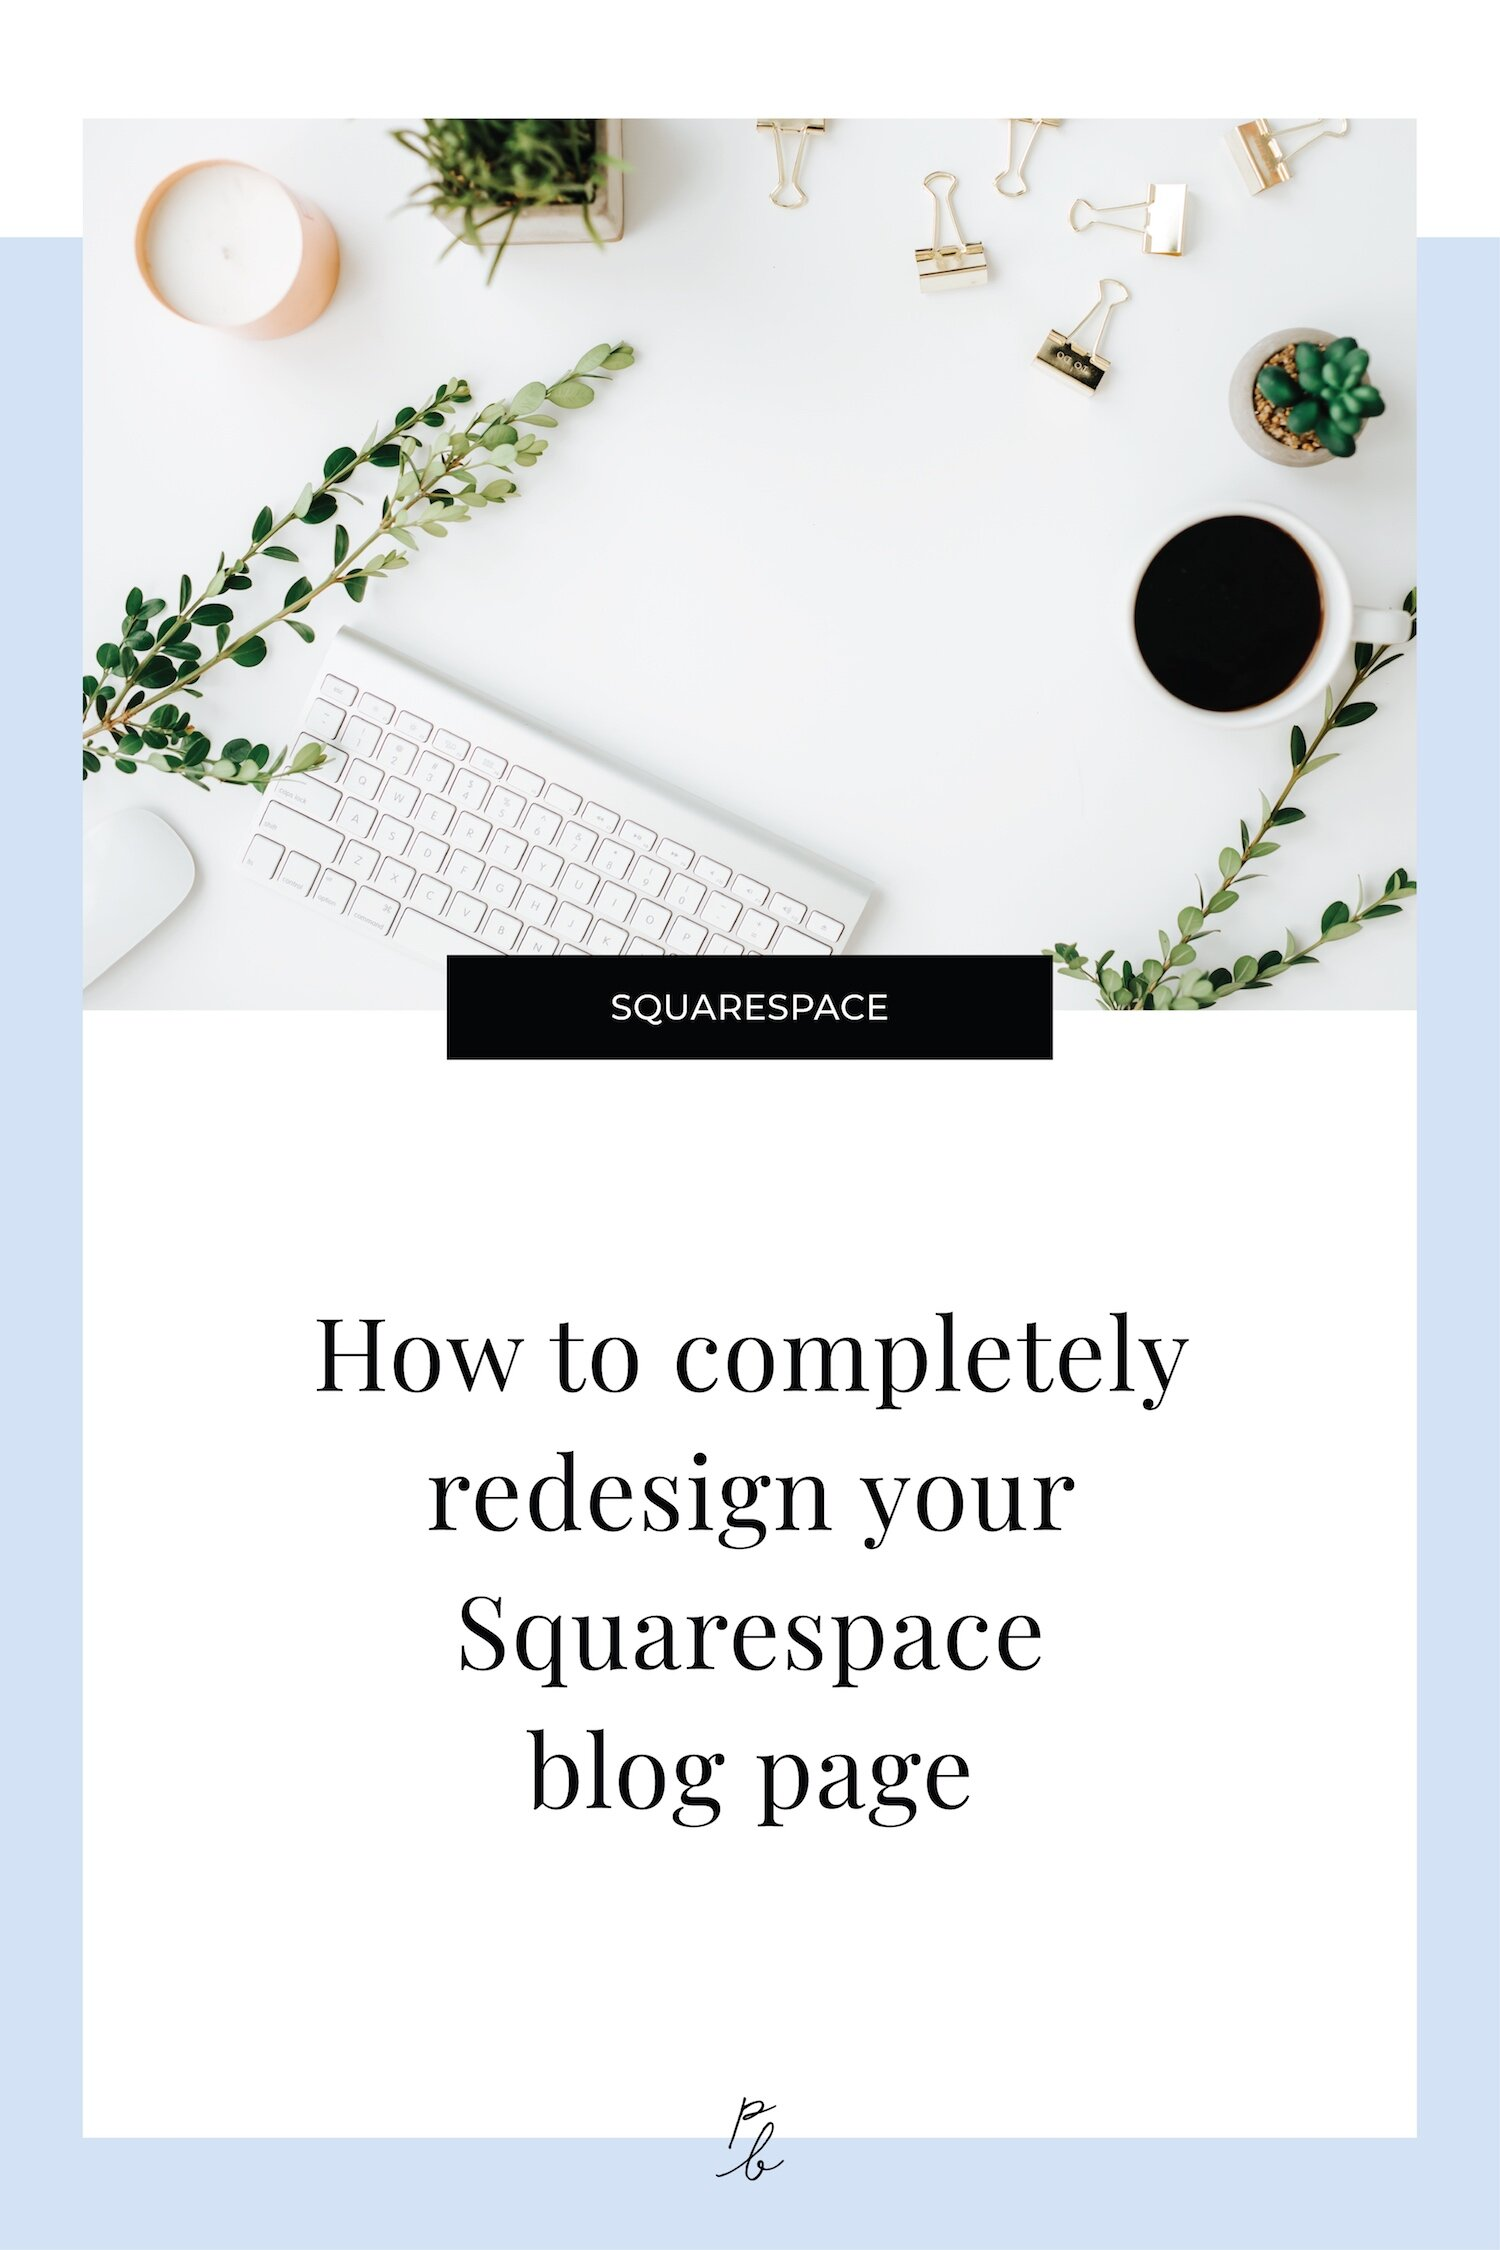 How to completely redesign your Squarespace blog page-84.jpeg